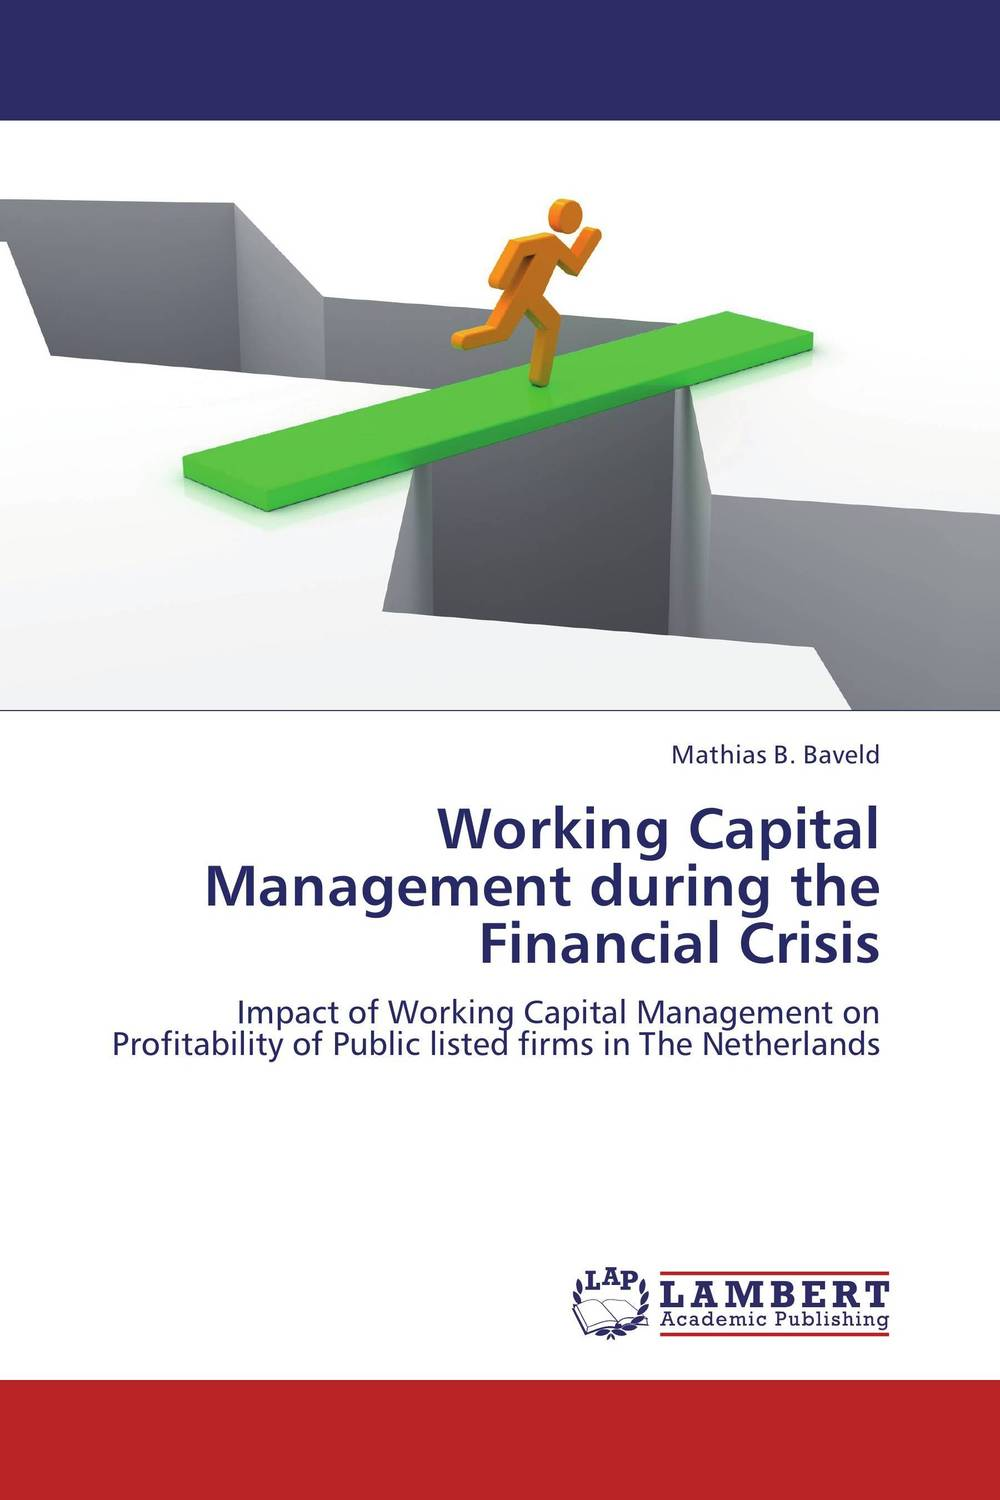 Working Capital Management during the Financial Crisis not working